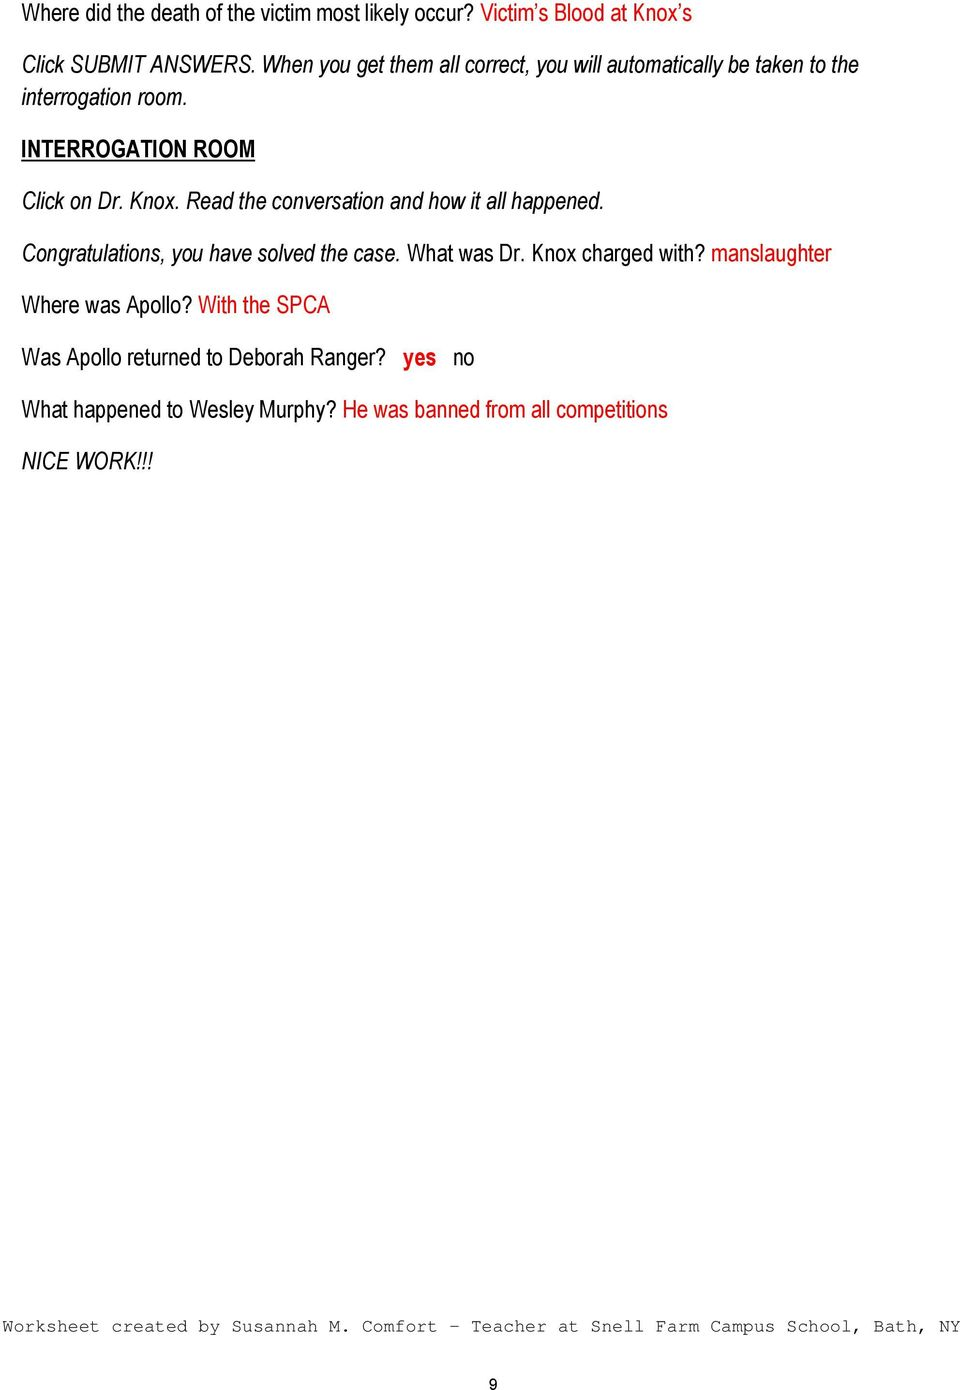 worksheet Csi Web Adventures Worksheet name key date csi the experience case 2 canine caper click on read conversation and how it all happened congratulations you have solved case